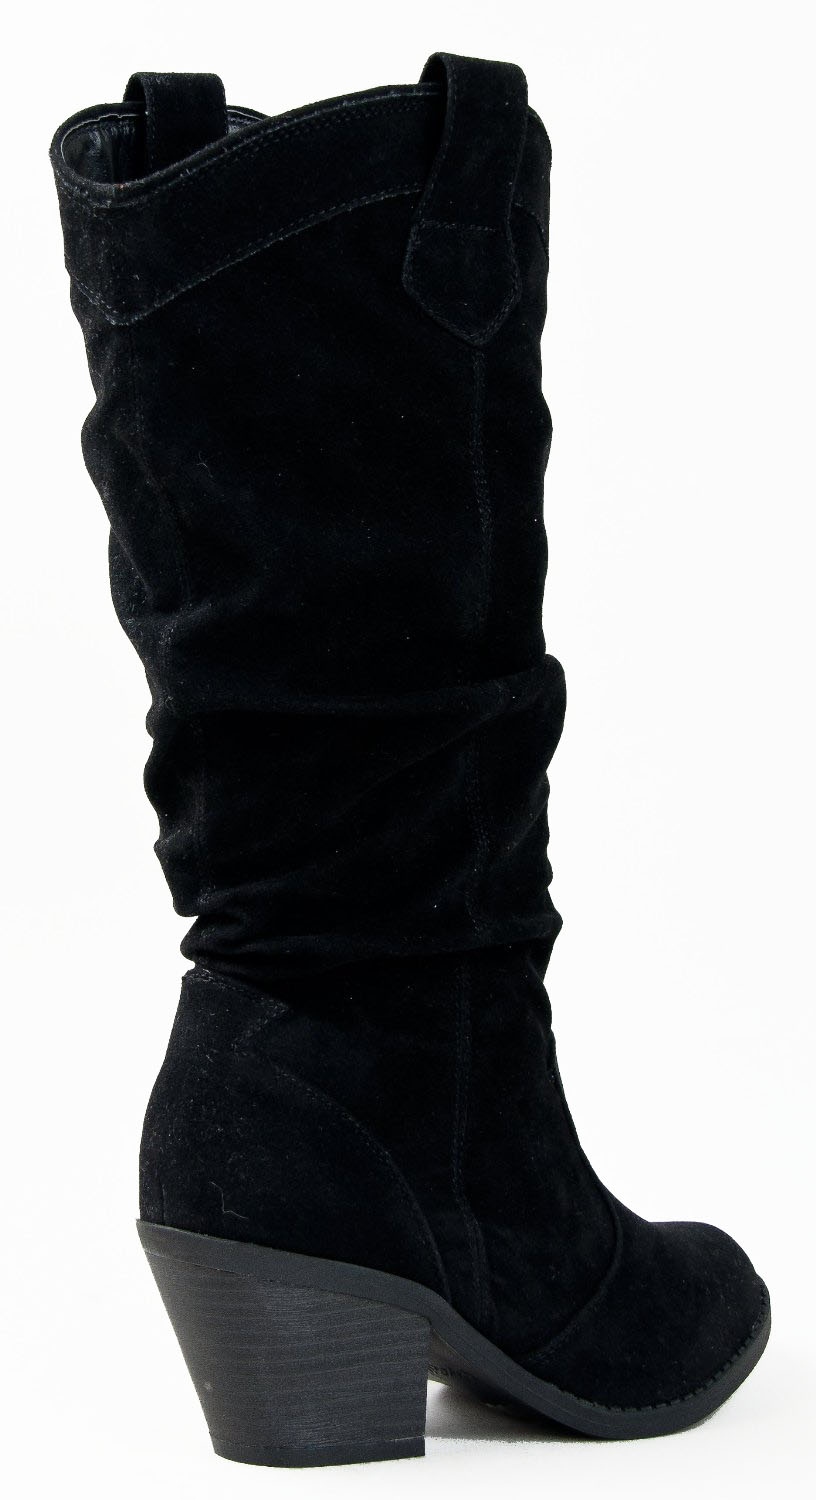 Qupid-MUSE-01-Western-Cowboy-Inspired-Slouchy-Mid-Calf-Knee-High-Stacked-Heel miniature 9